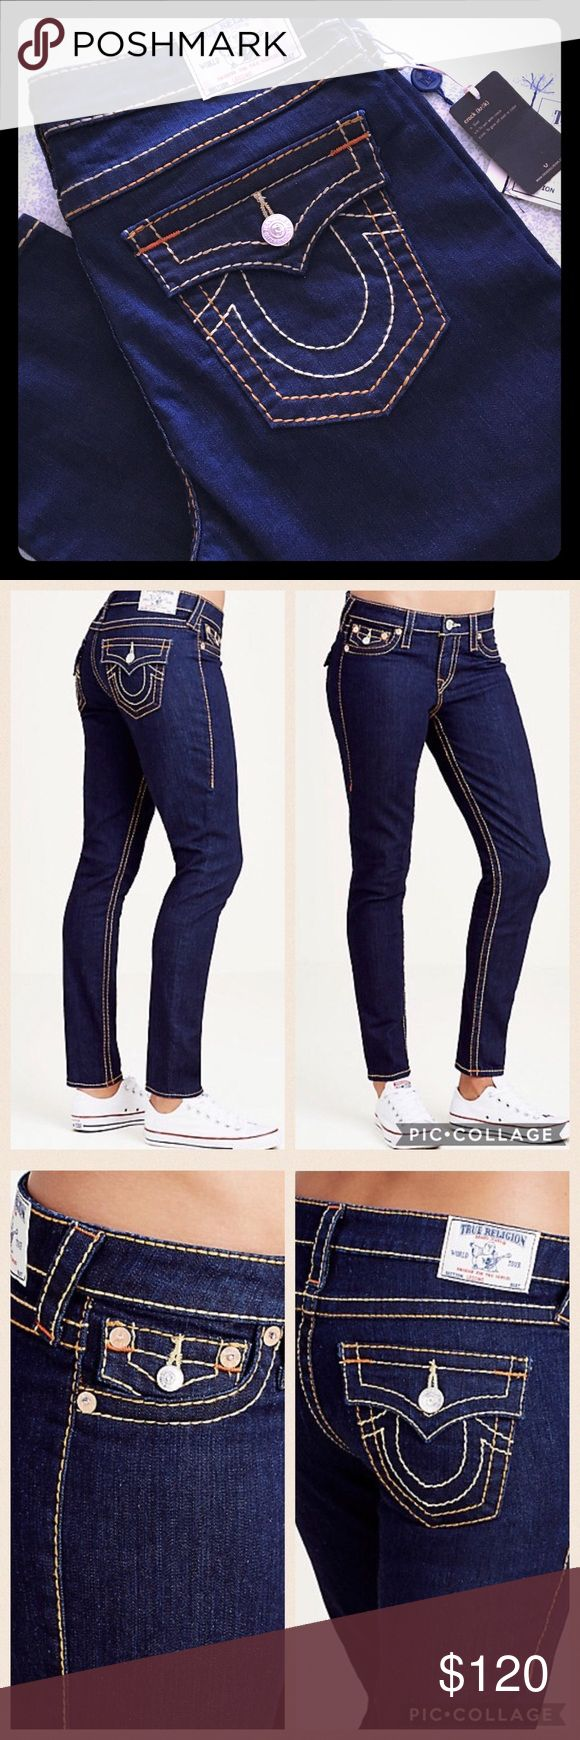 "NWT True Religion Super Skinny Big T Women's Jeans ONLY AVAILABLE UNTIL FRIDAY 1/20/17!!! BUY NOW!!! Please feel free to ask questions... Brand NEW True Religion Womens Jeans Flap Pockets in Body Rinse.  Super Skinny Leg Mid rise - 9-1/2"" Waist - 17"" 30"" inseam Zip Fly 92% cotton 6% poly 2% elastane True Religion Jeans Skinny"